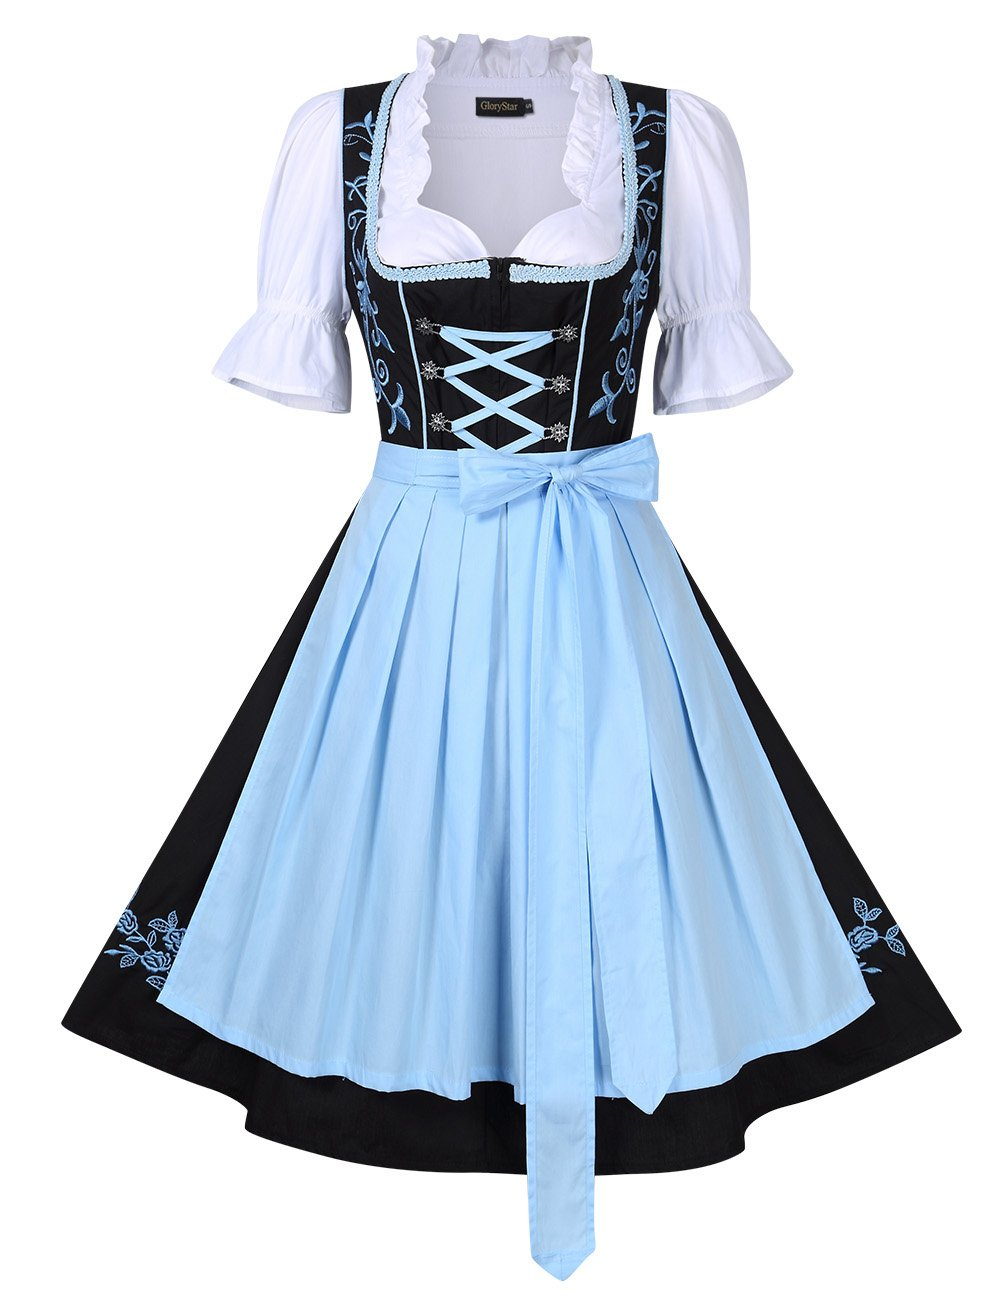 Leoie Women's Beer Festival Stylish Dress Suit Short Sleeve A Swing Holiday Party Dress for Oktoberfest Black with Blue 34